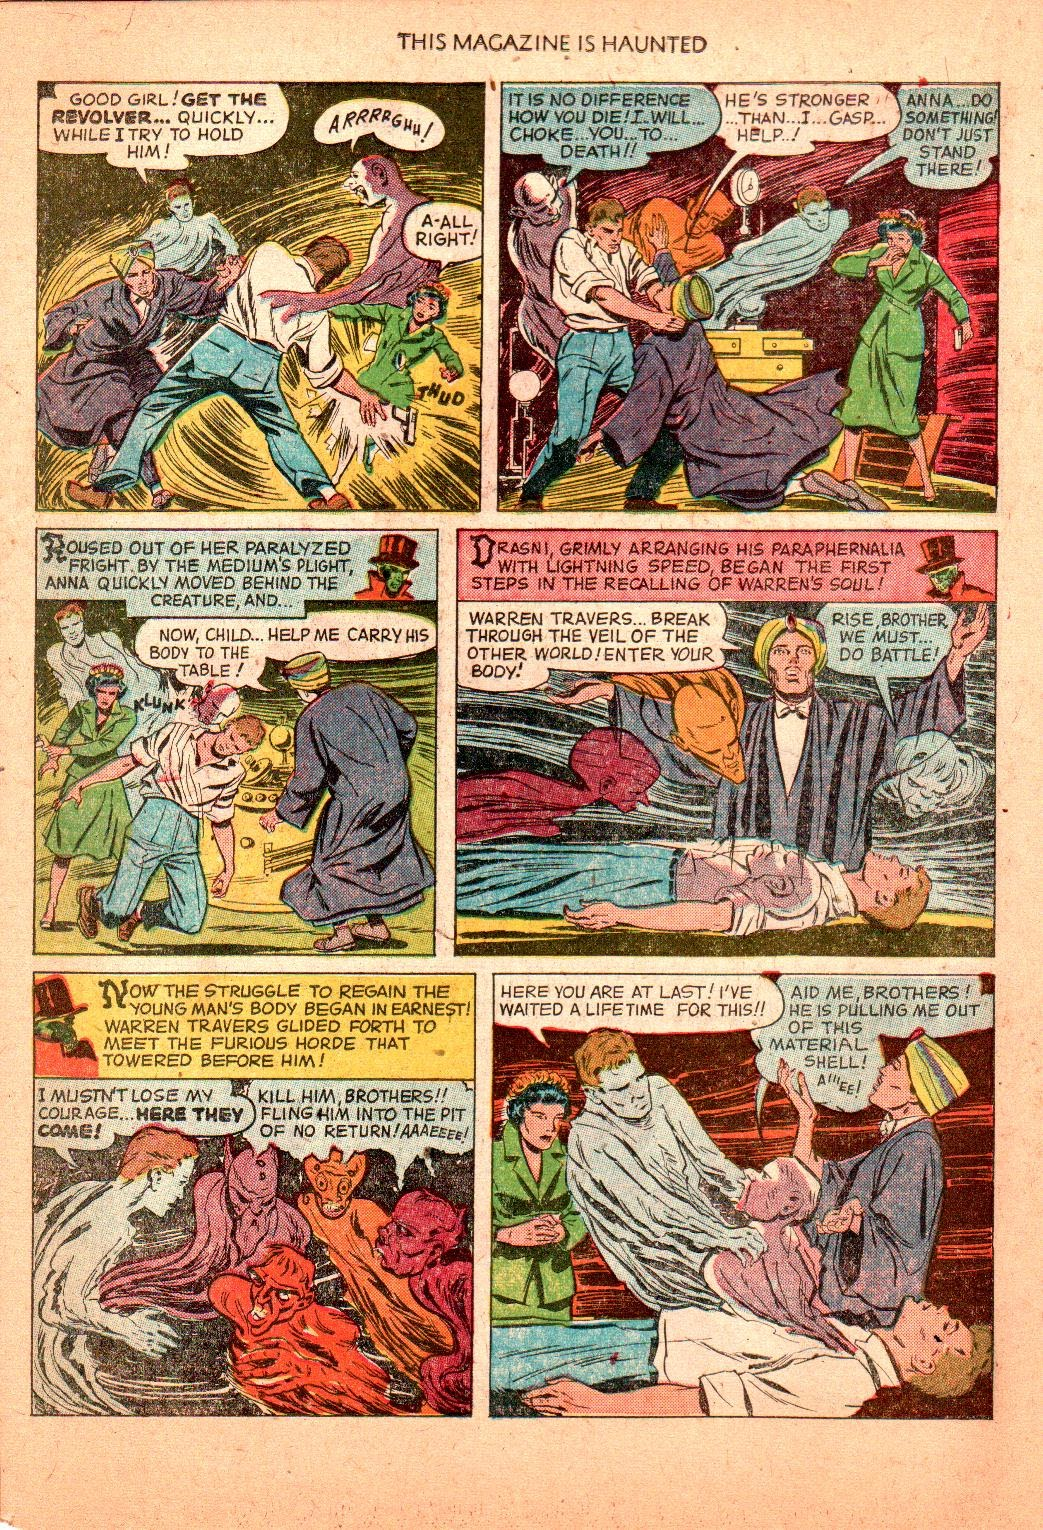 Read online This Magazine Is Haunted comic -  Issue #4 - 22